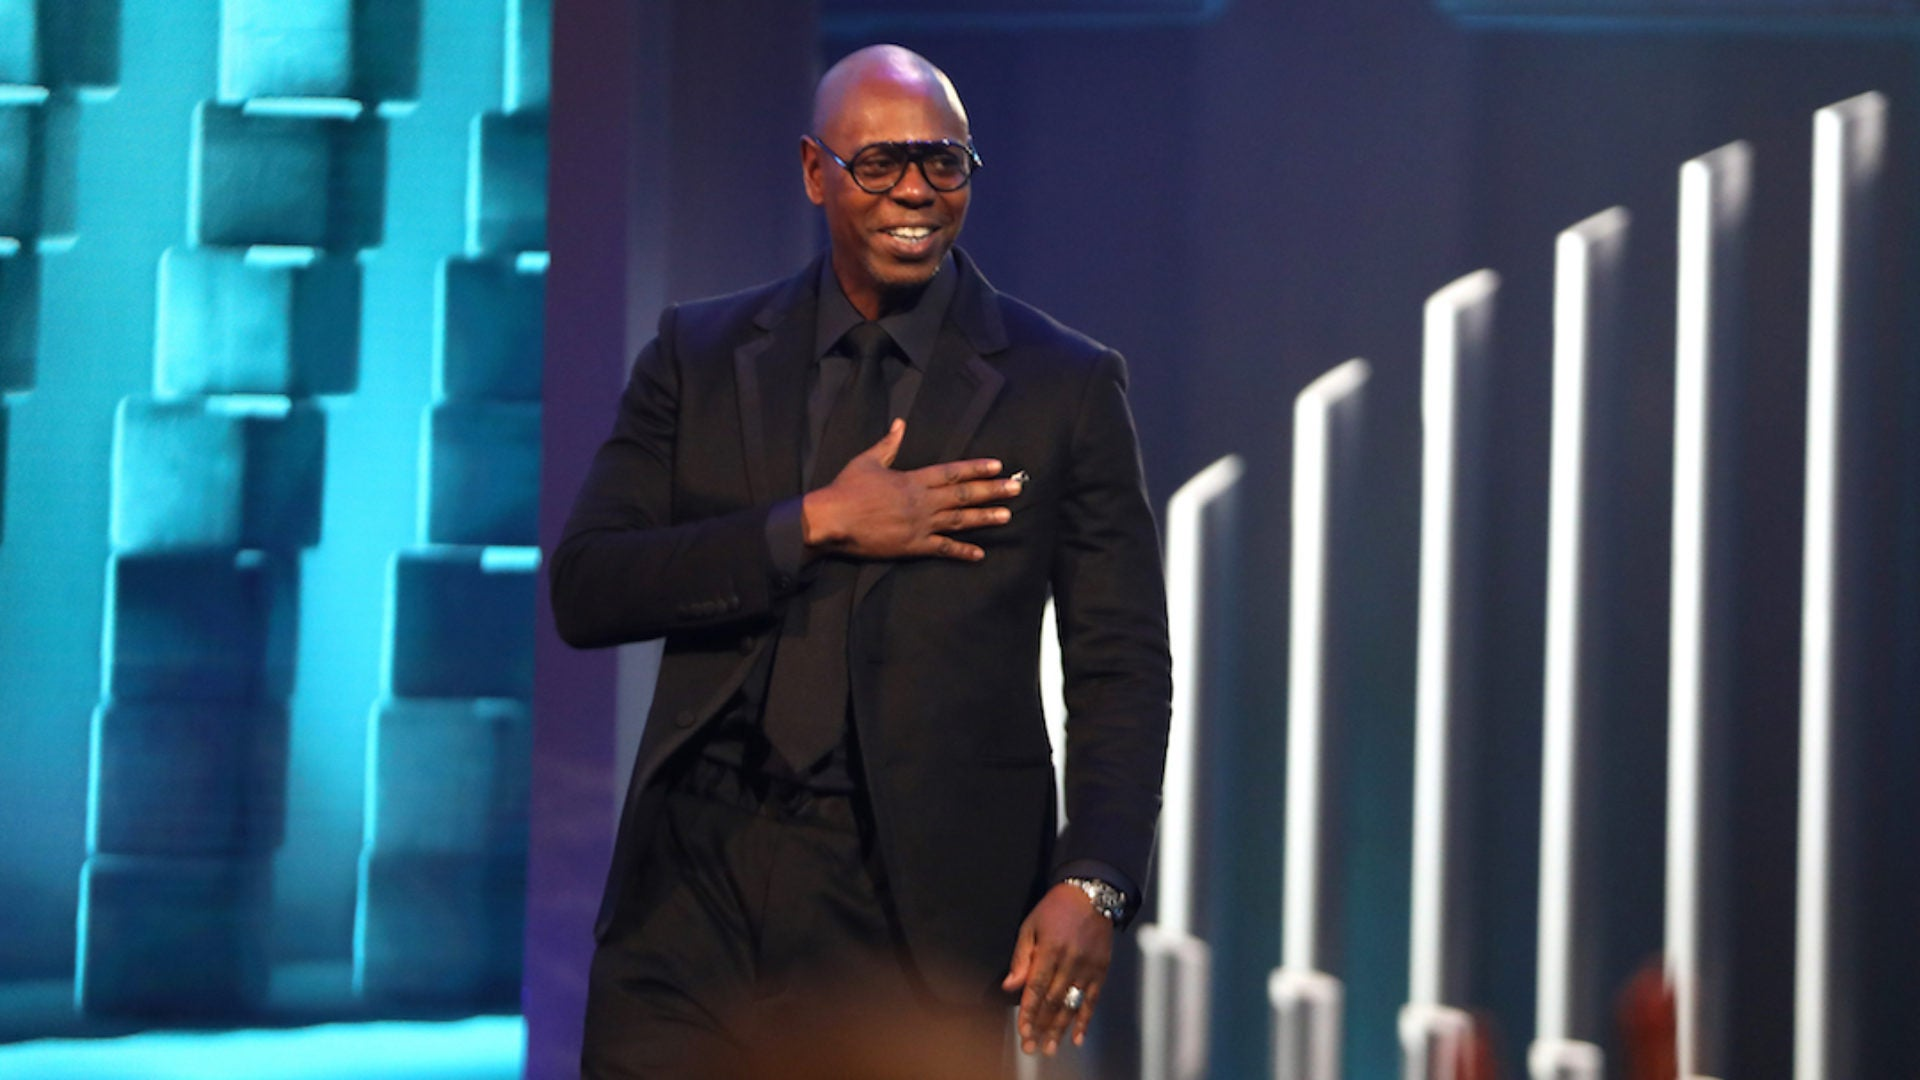 Dave Chappelle Honored At Kennedy Center With Mark Twain Prize